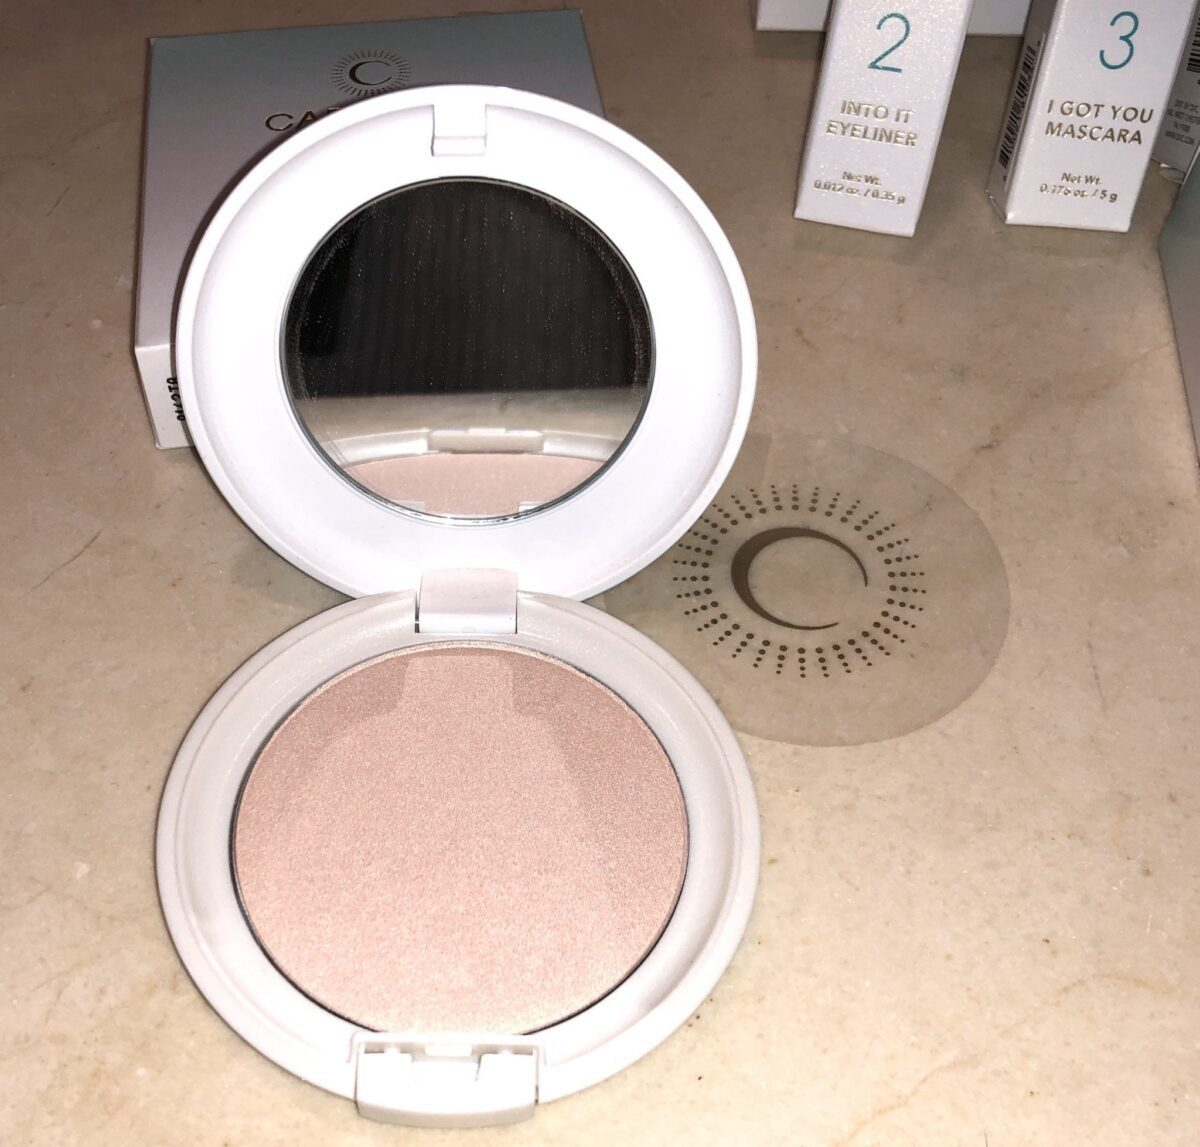 INSIDE THE CARMINDIZING HIGHLIGHTER IN ETHEREAL